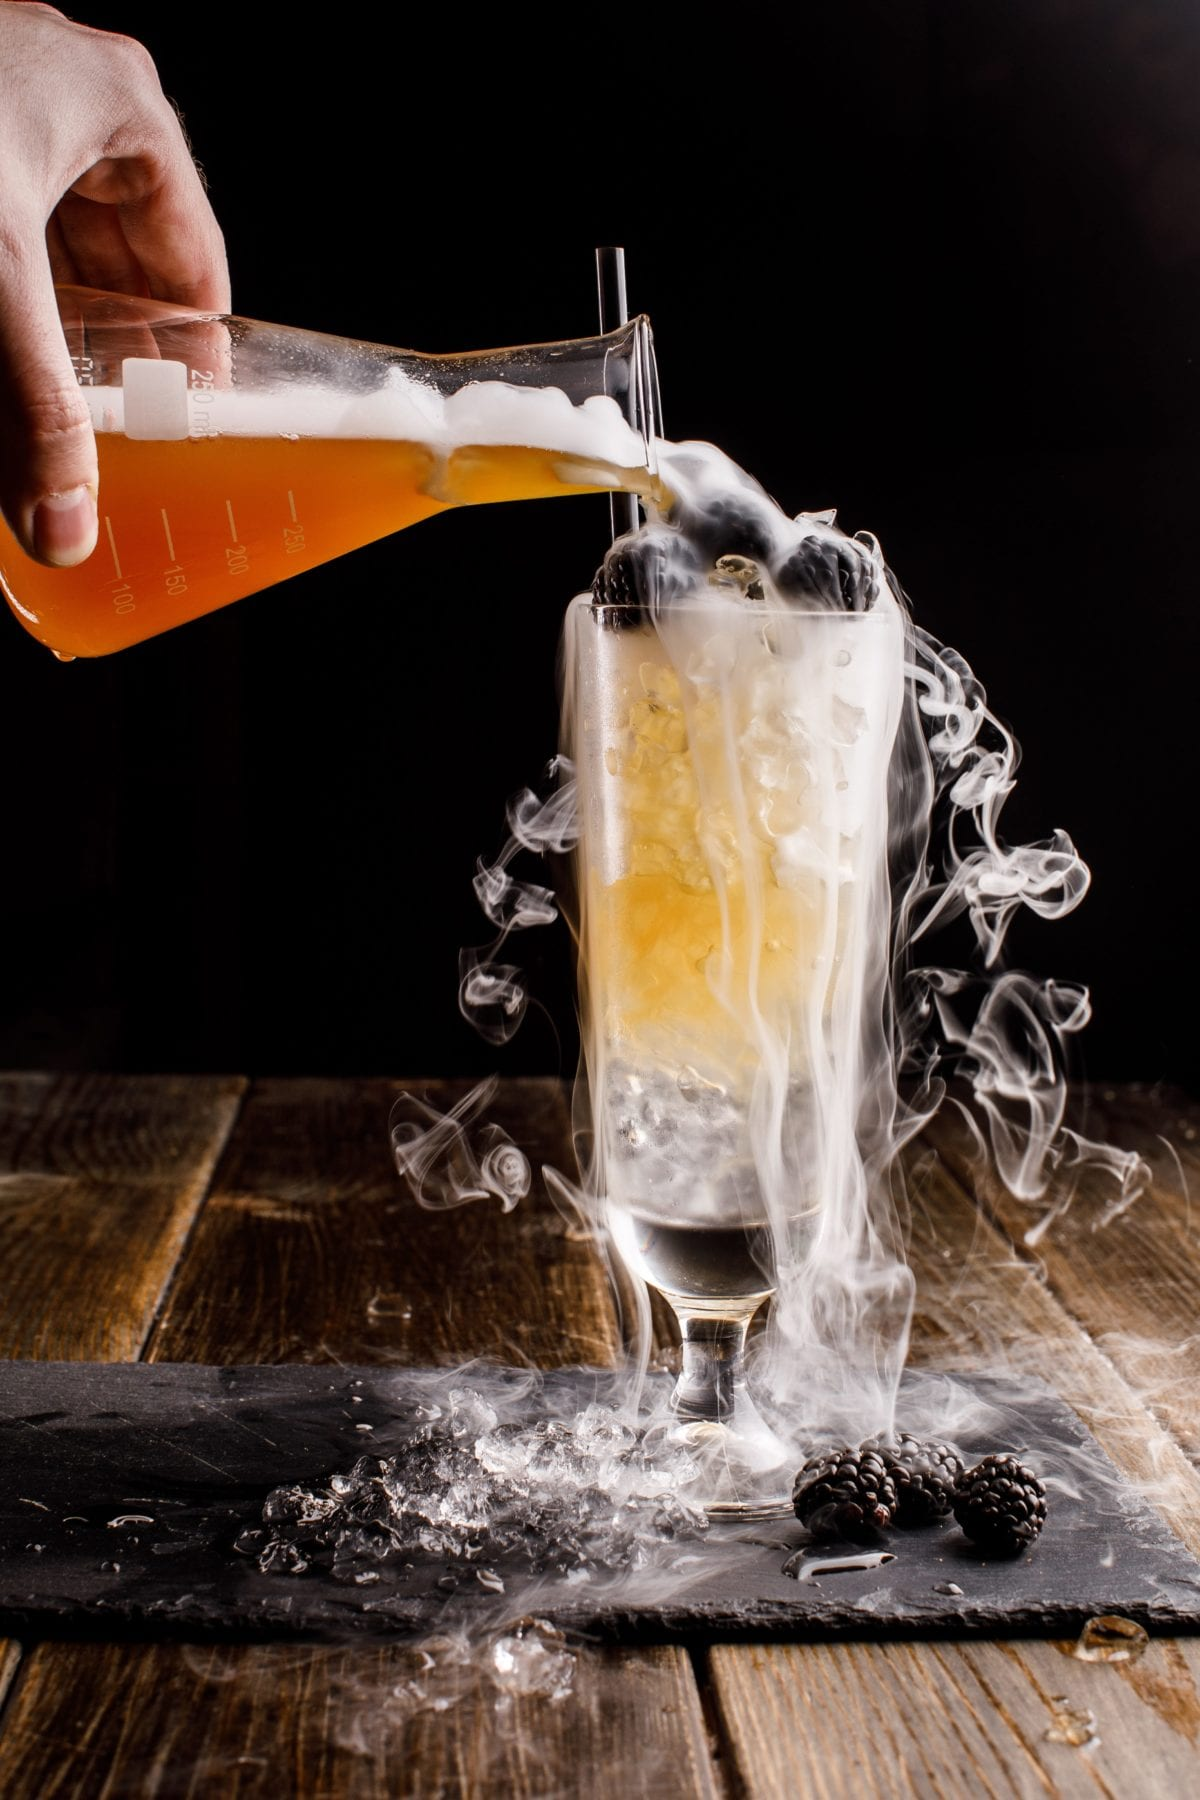 Making a Smoking Cocktail with Dry Ice